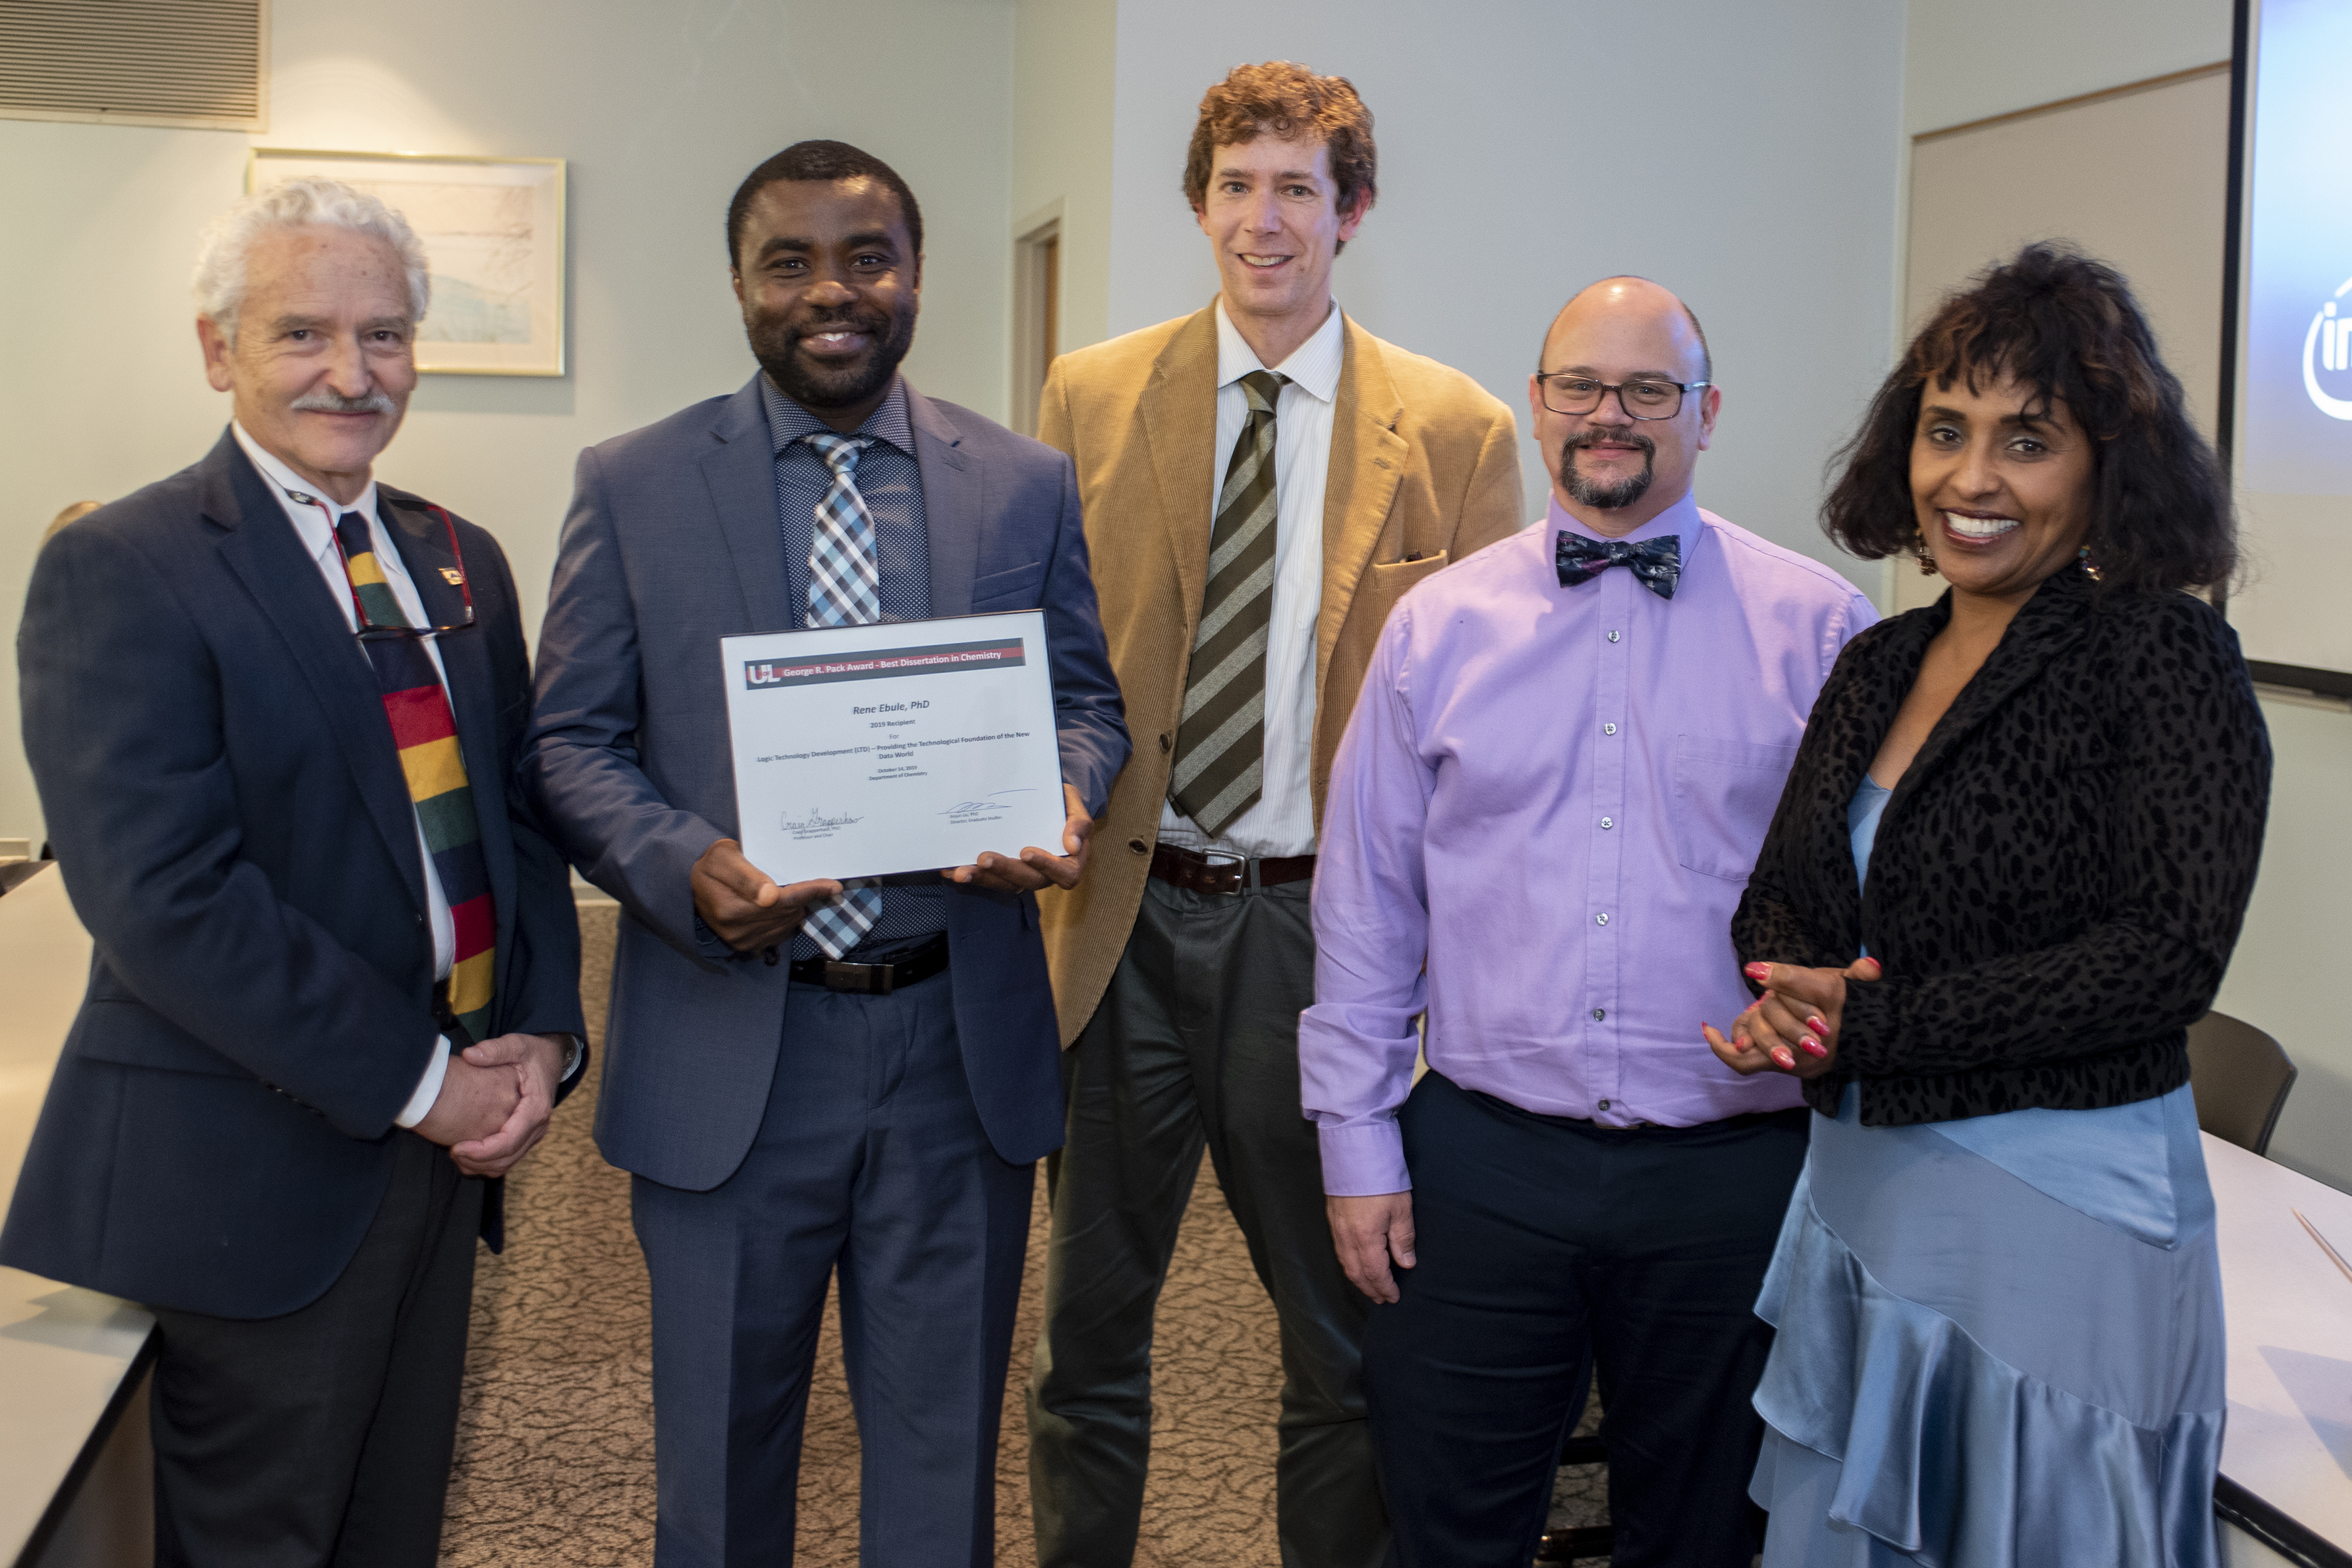 2019 George R. Pack Award for Most Outstanding Chemistry PhD Dissertation Ceremony